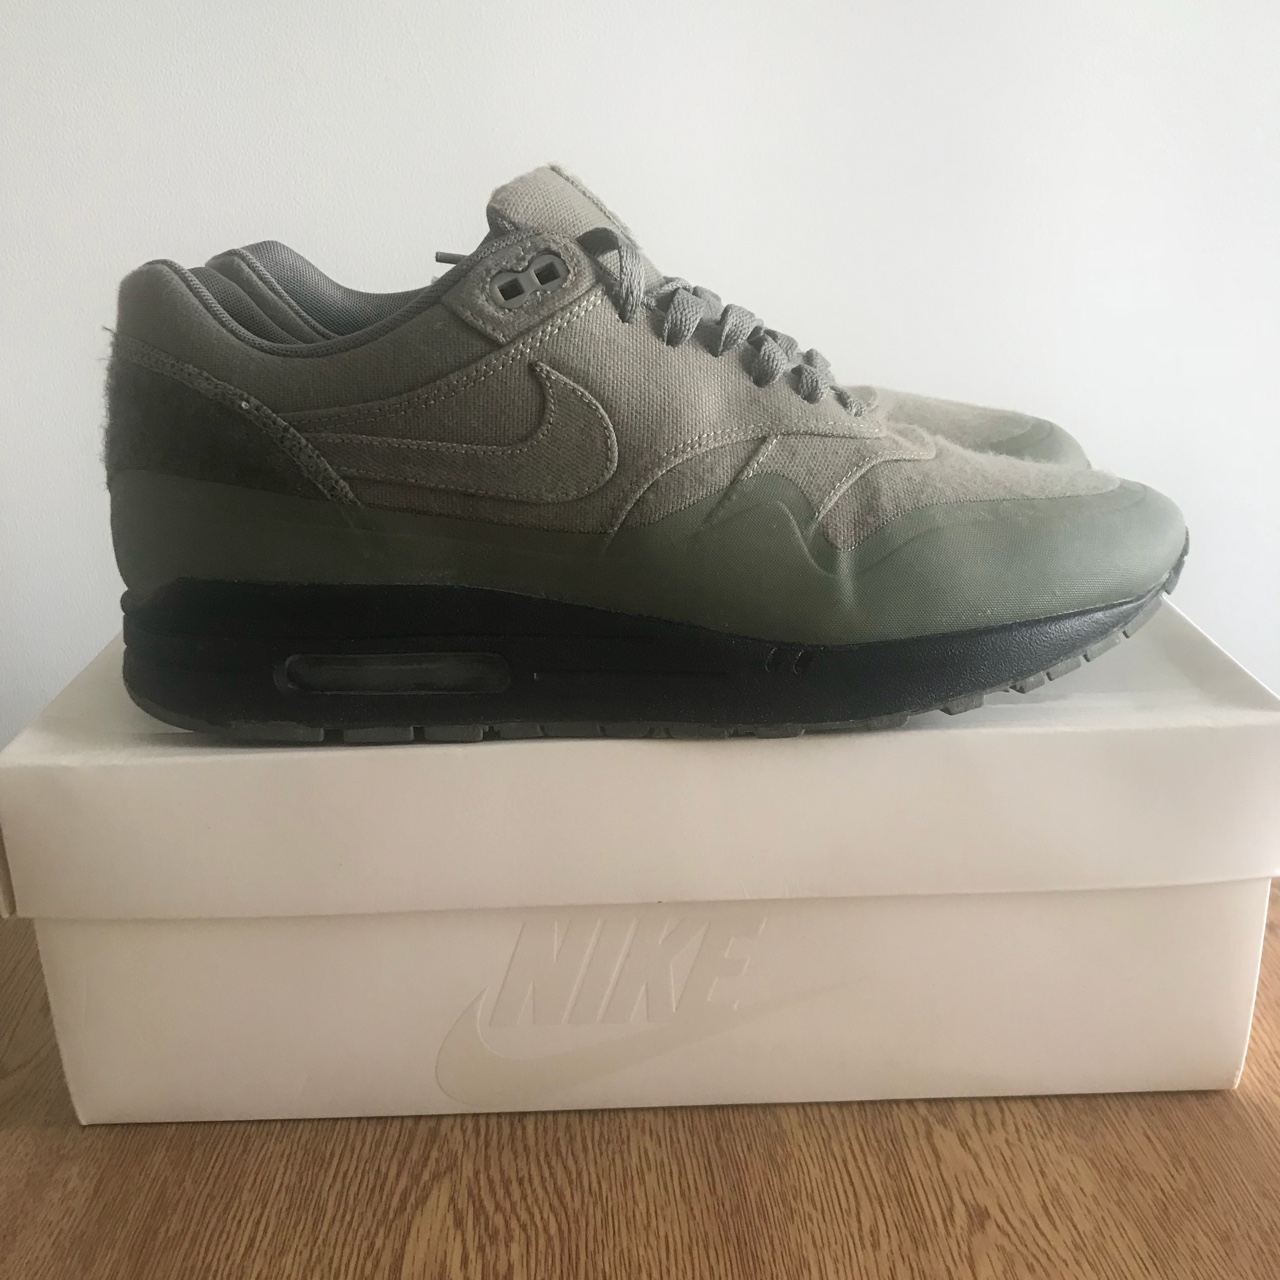 Nike Air Max 1 Patch Olive •